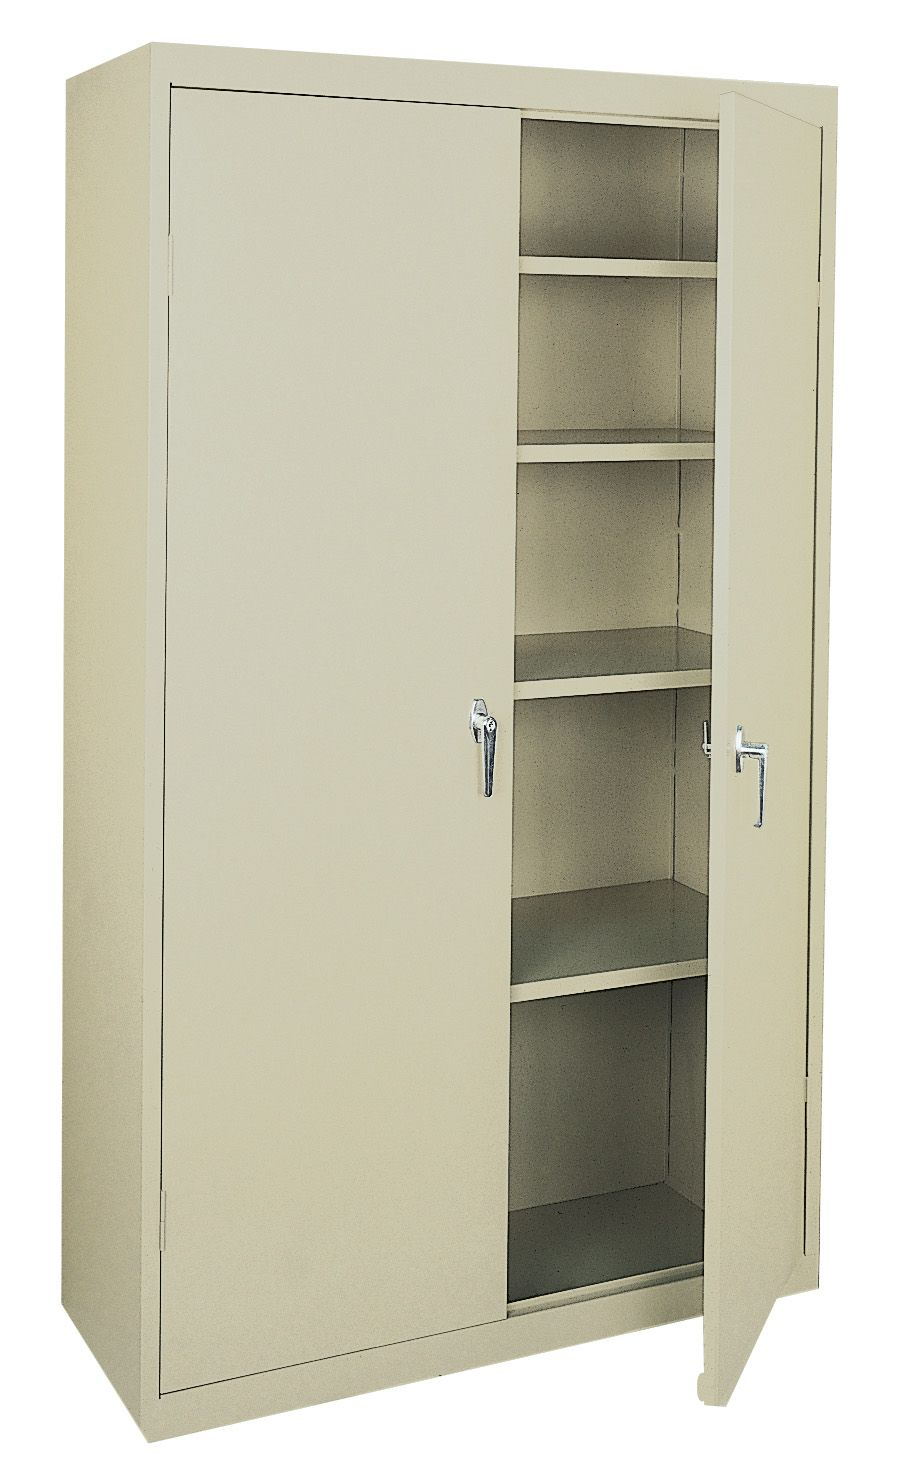 Best Of Metal Utility Storage Cabinets